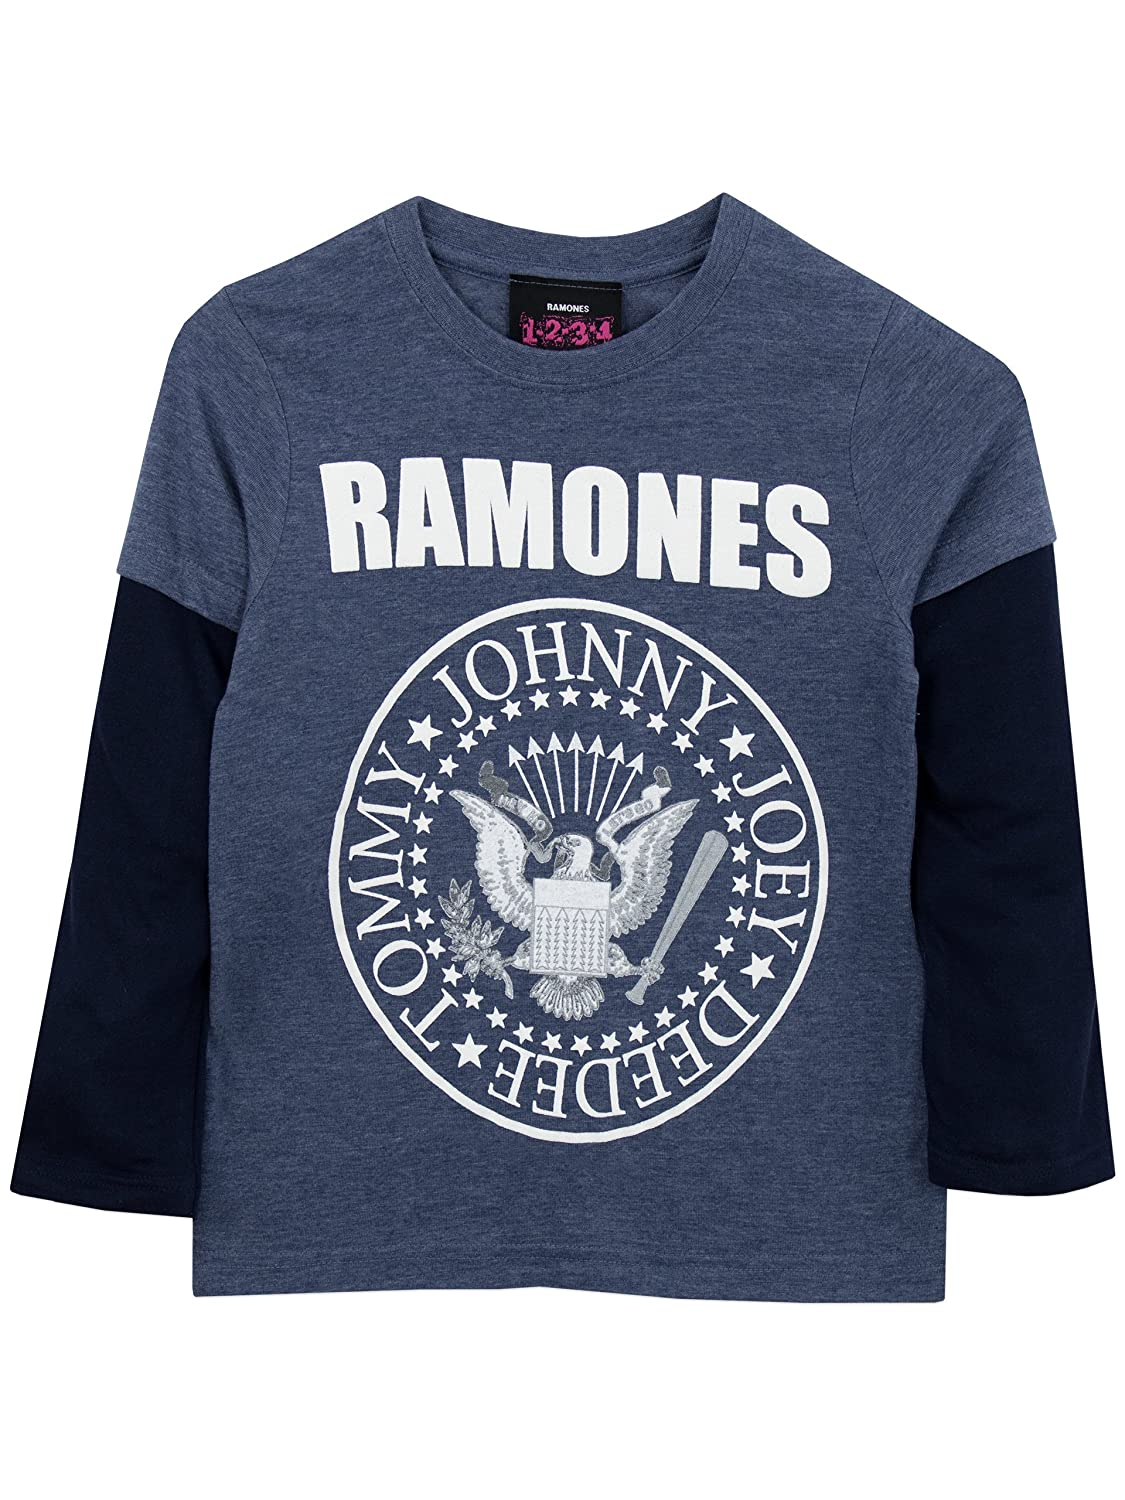 Ramones Boys Long Sleeved Top Ages 3 to 13 Years